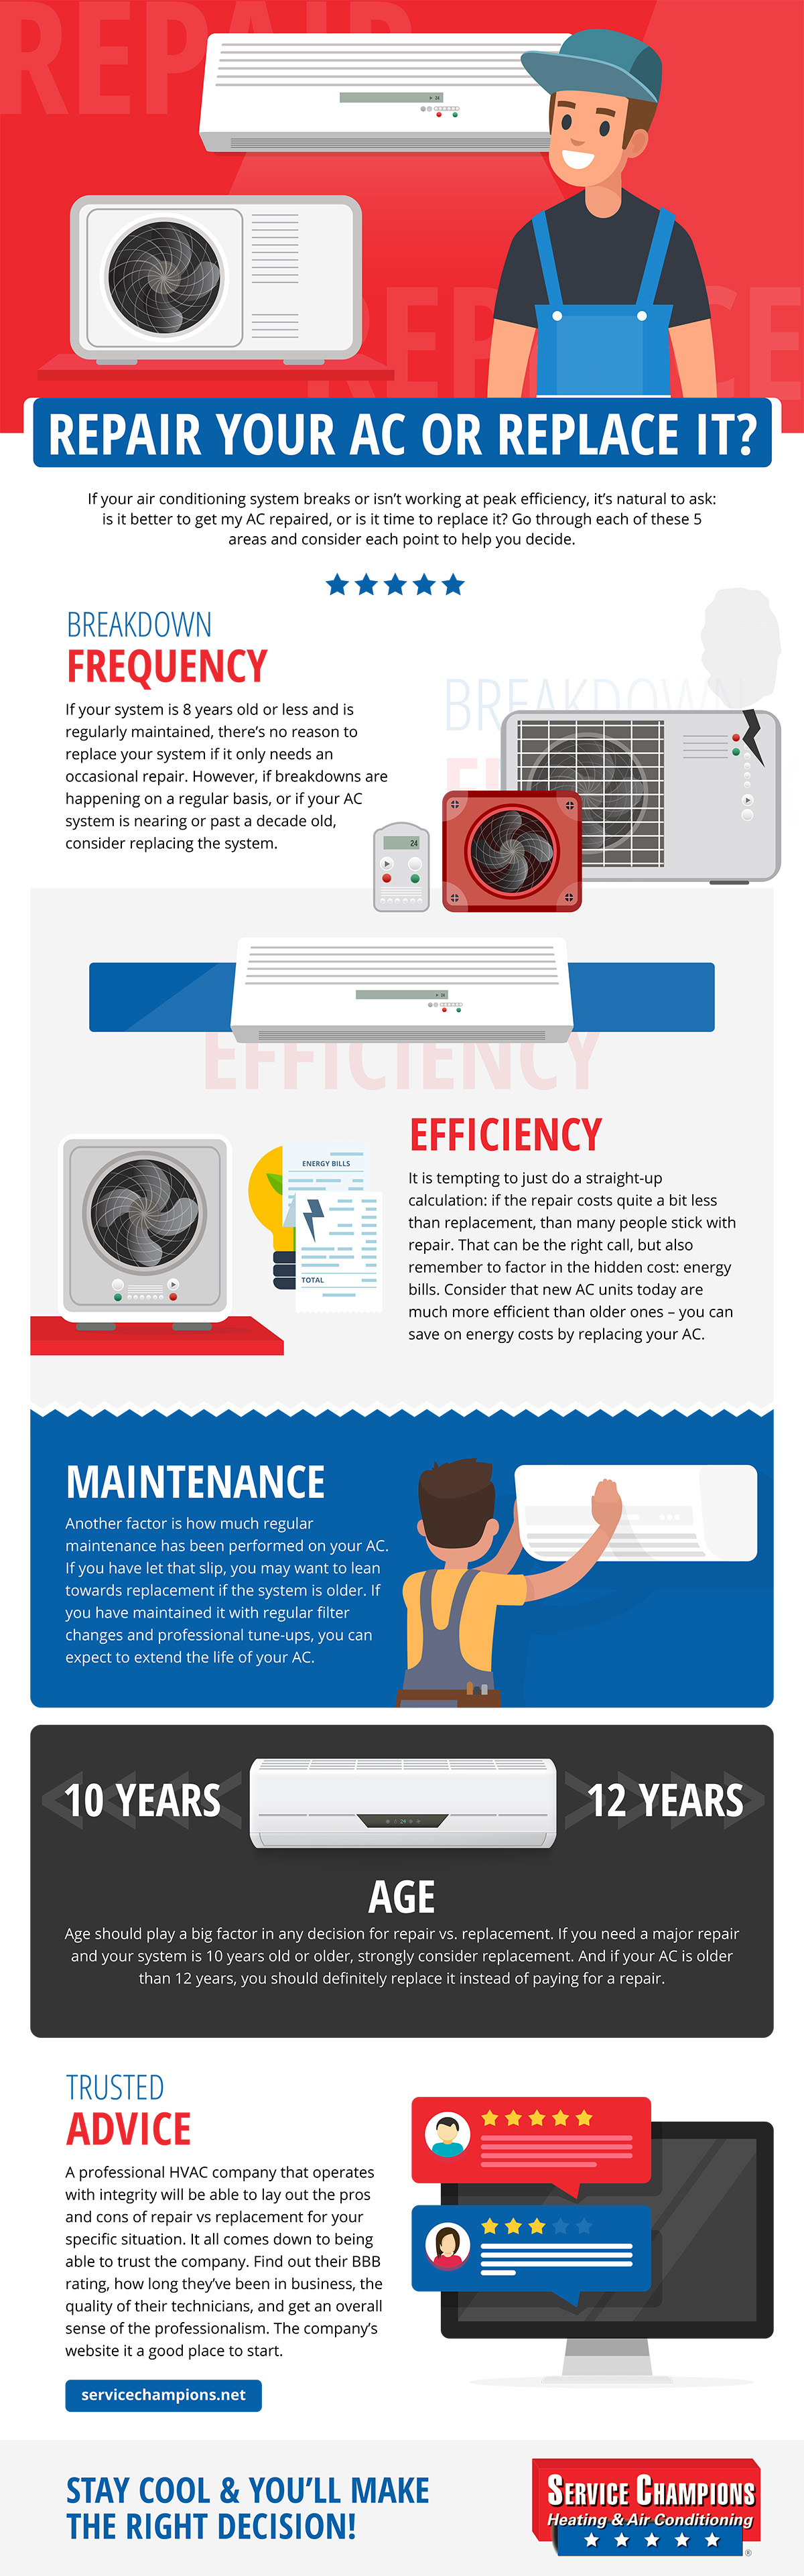 Repair or Replace Your AC - Infographic - Service Champions